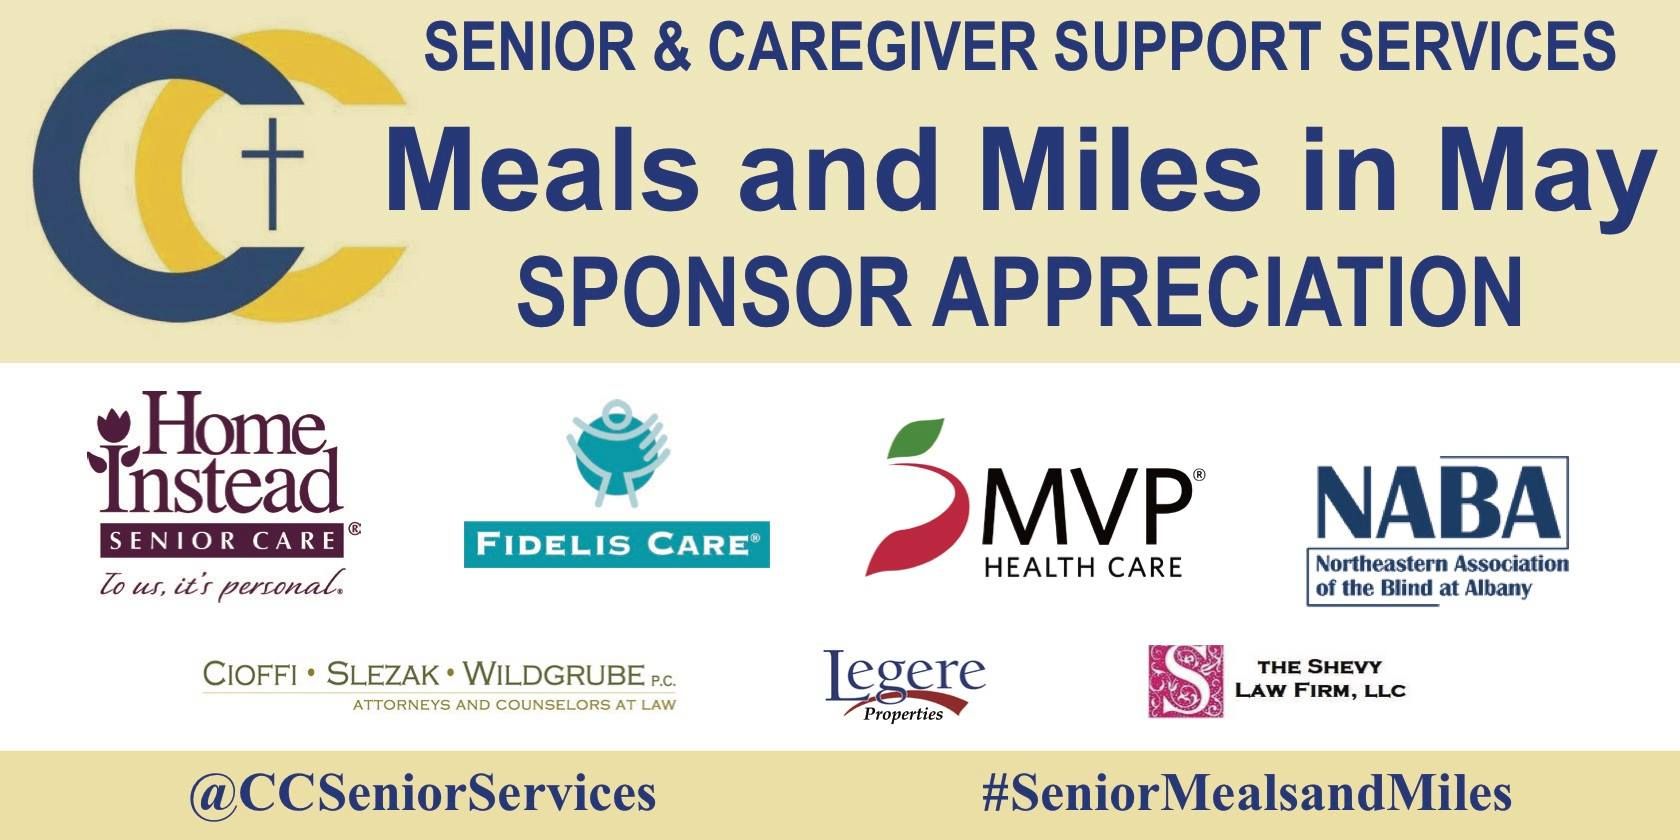 Catholic Charities Senior & Caregiver Support Services (CCSCSS) is the Meals on Wheels provider for the senior population in Schenectady County.